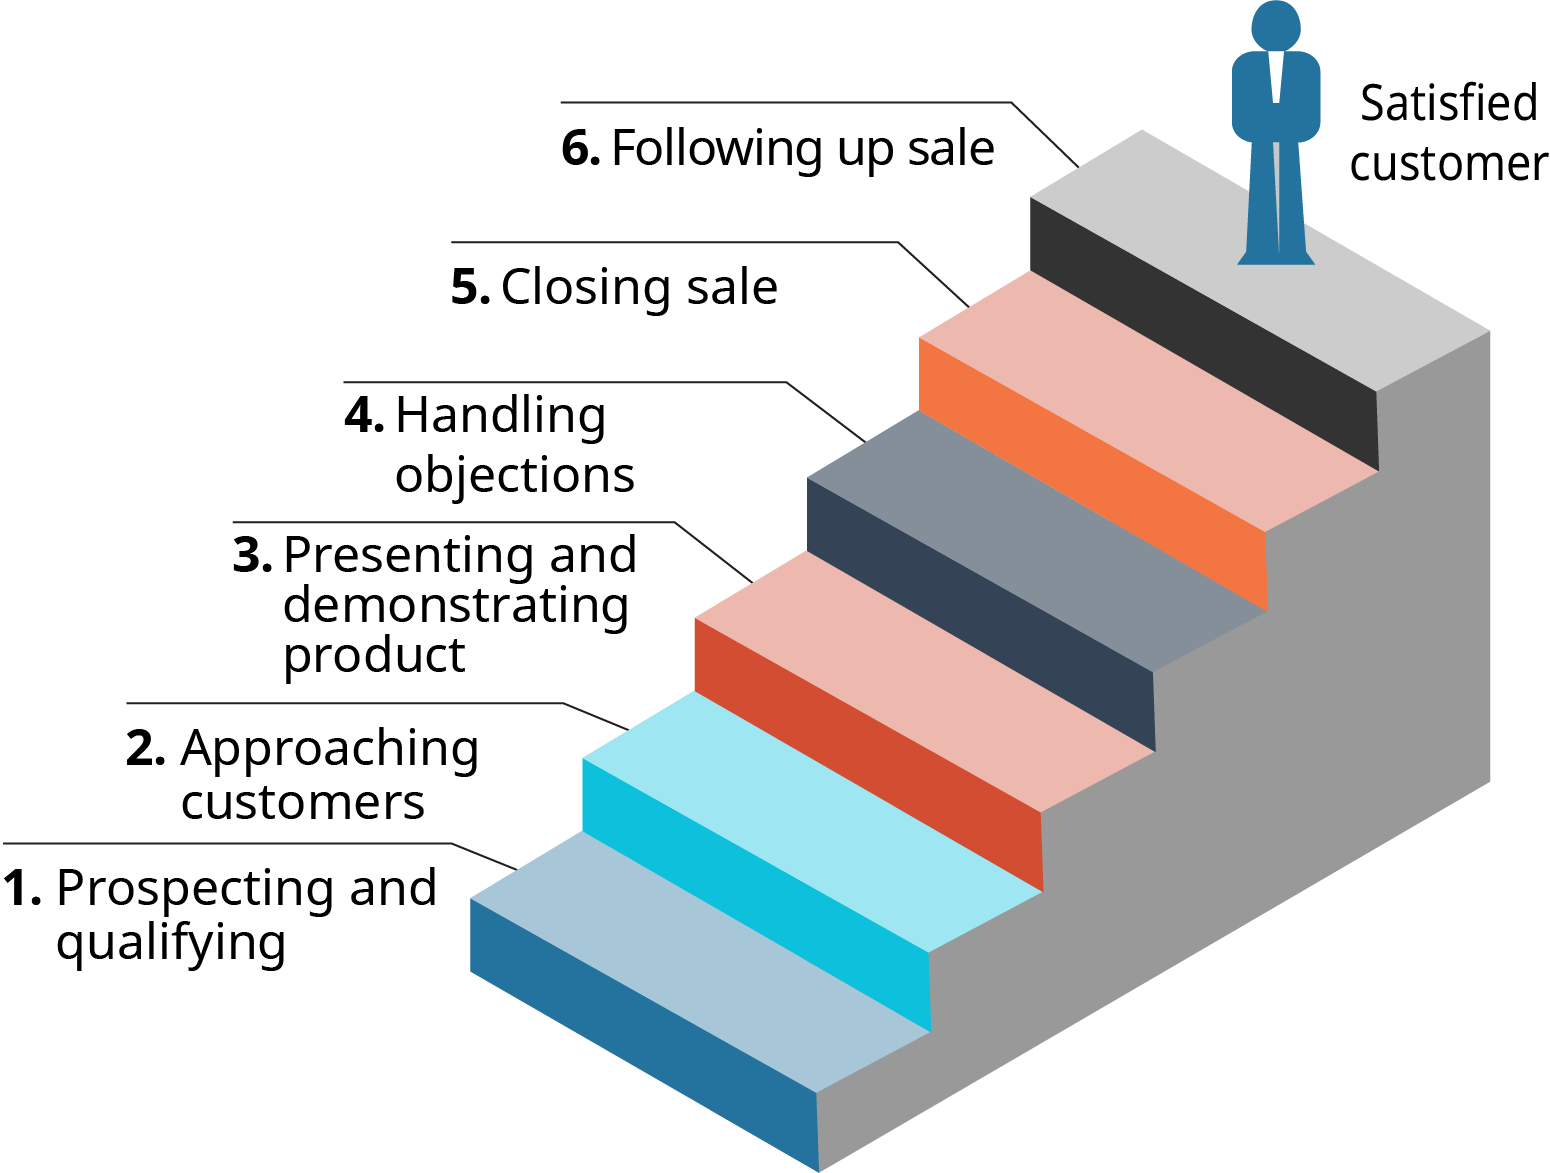 A diagram shows the 6 steps in the sales process as a staircase.